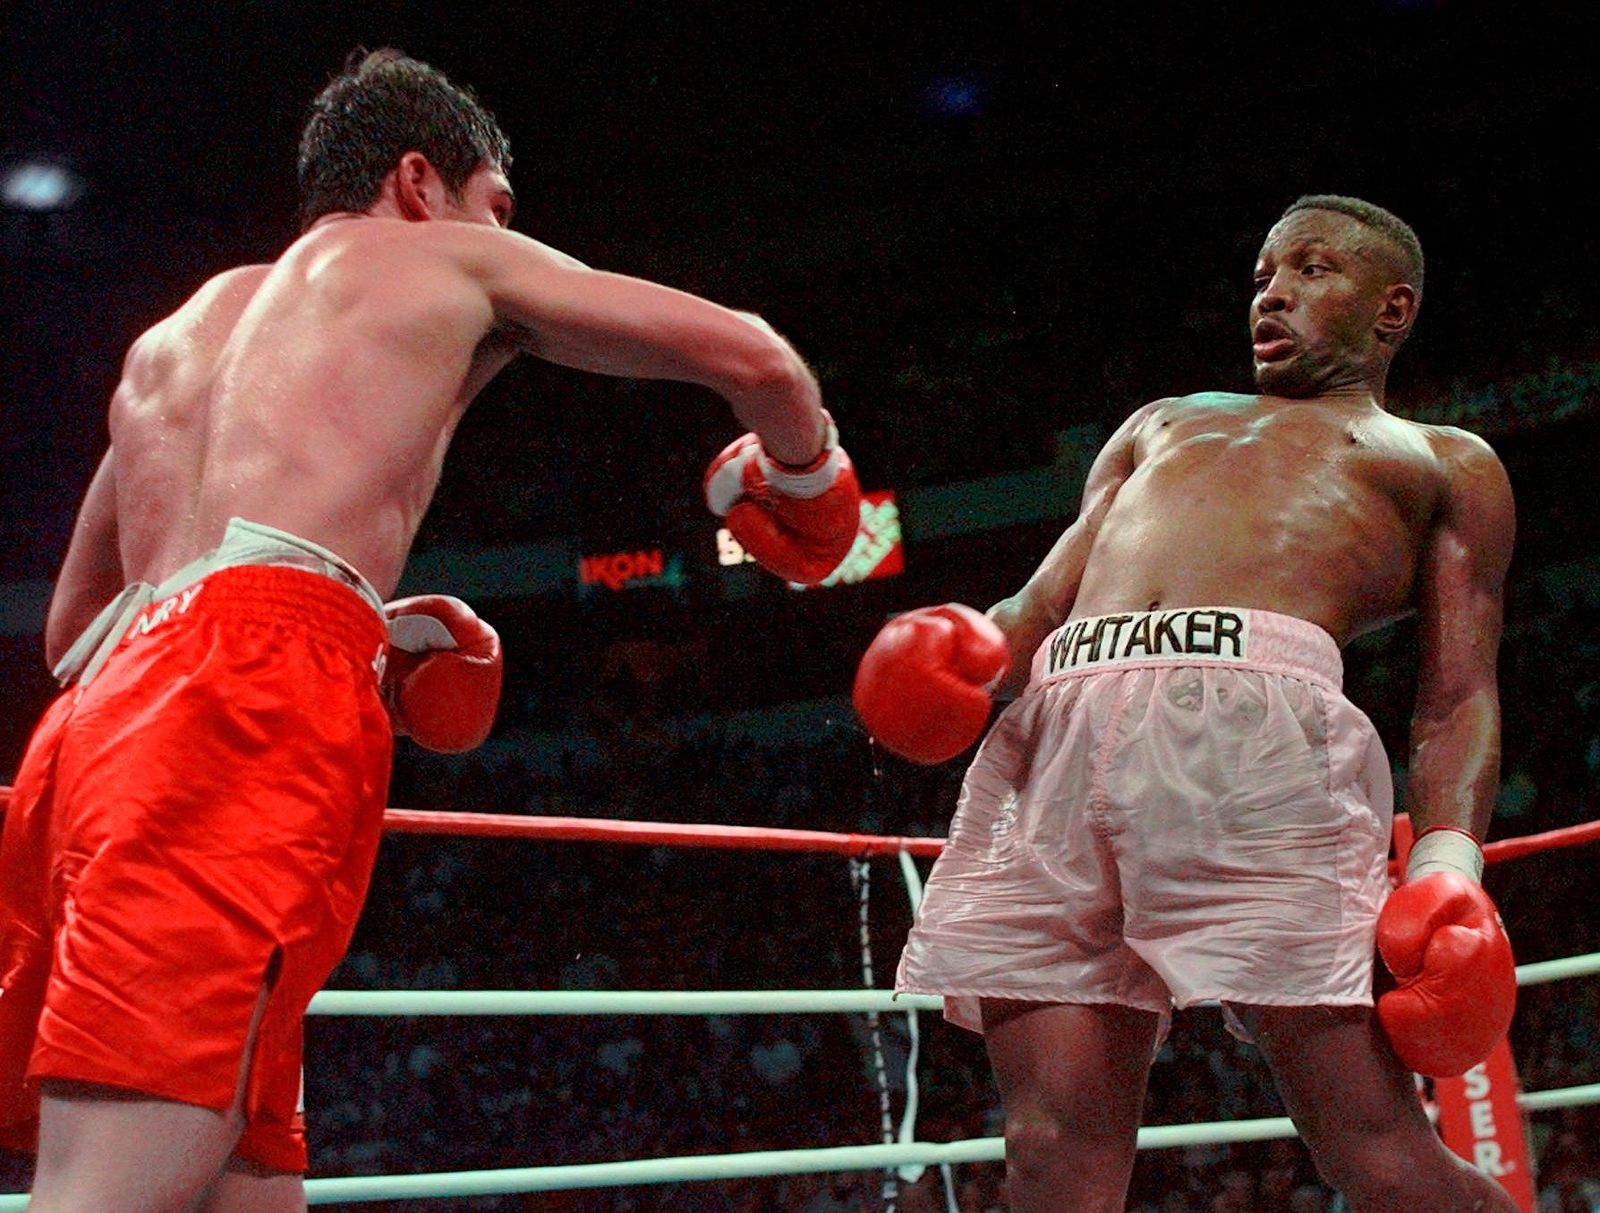 FILE - In this April 12, 1997, file photo, Pernell Whitaker, right, leans away from a punch by Oscar De La Hoya during their WBC Welterweight Championship fight at Thomas & Mack Center in Las Vegas.{ } (AP Photo/Eric Draper, File)